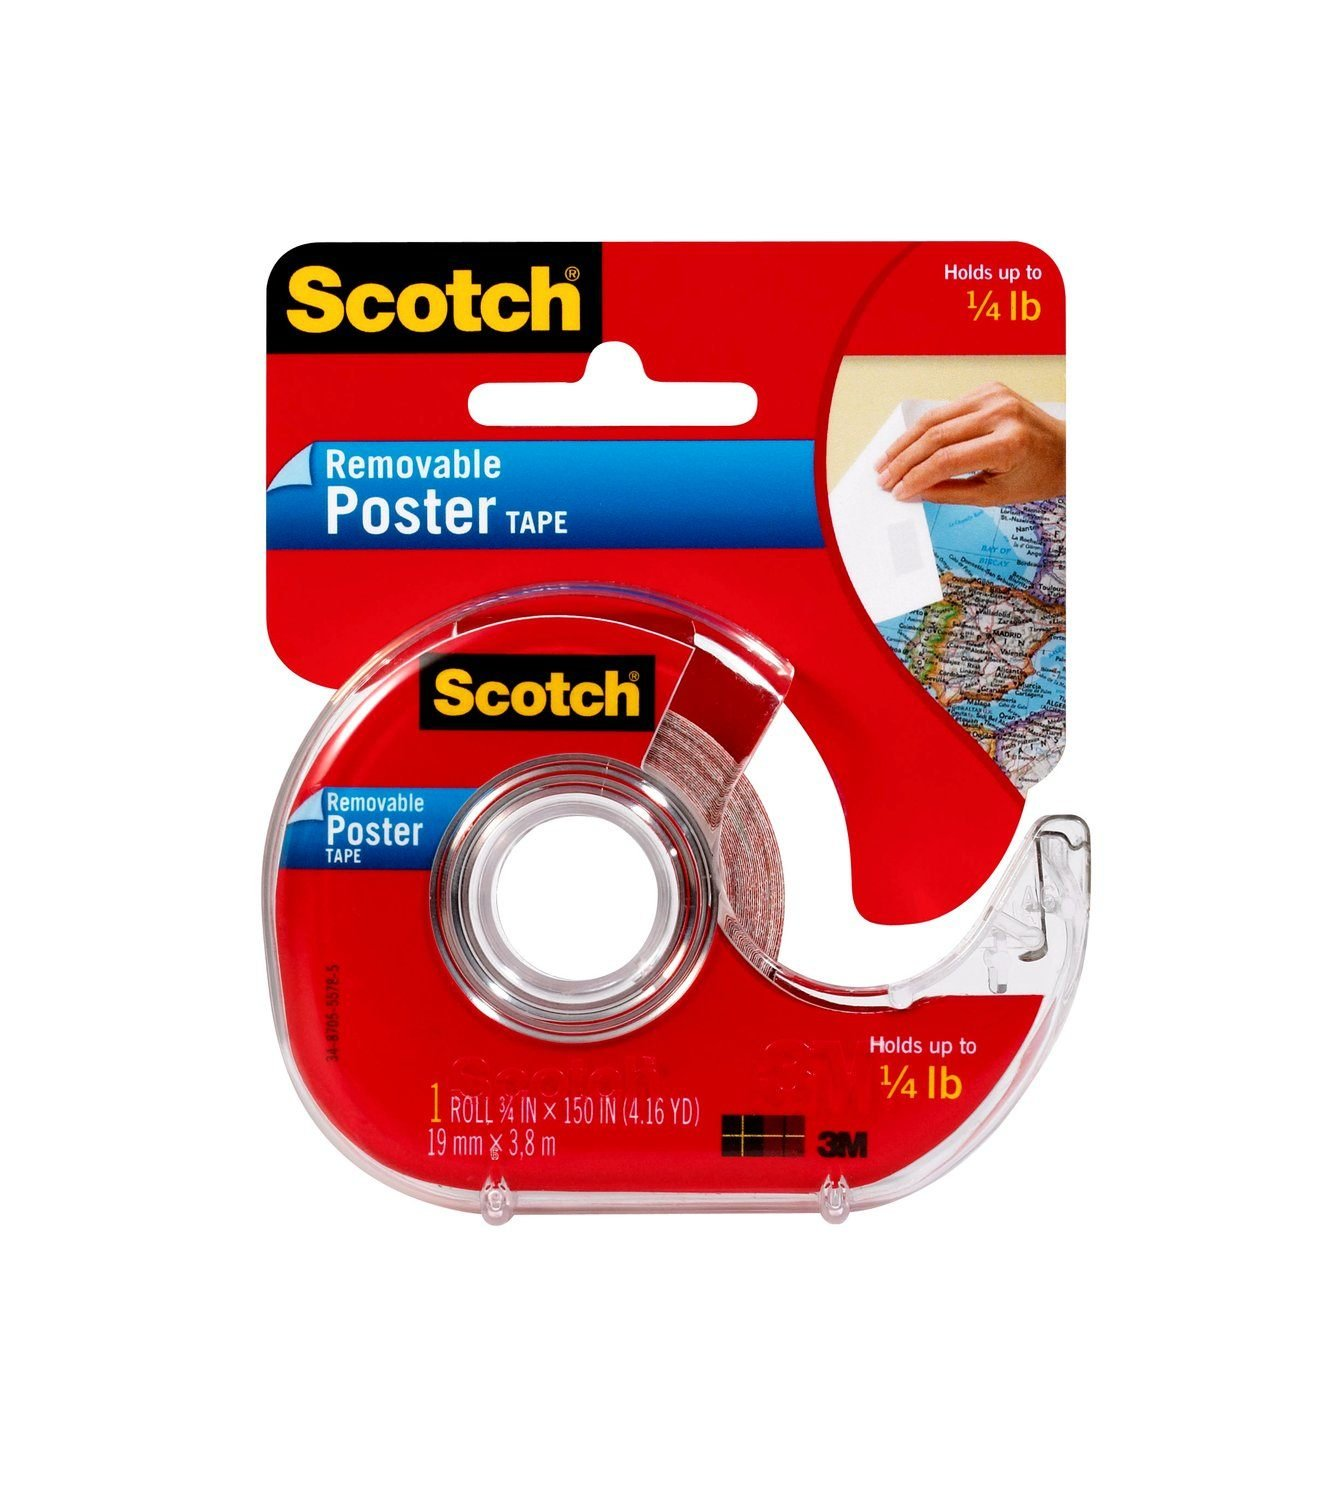 Scotch Removable Poster Tape, 3/4-inch x 150-inches, Clear, 1 Roll/Pack (109) 3M Office Products